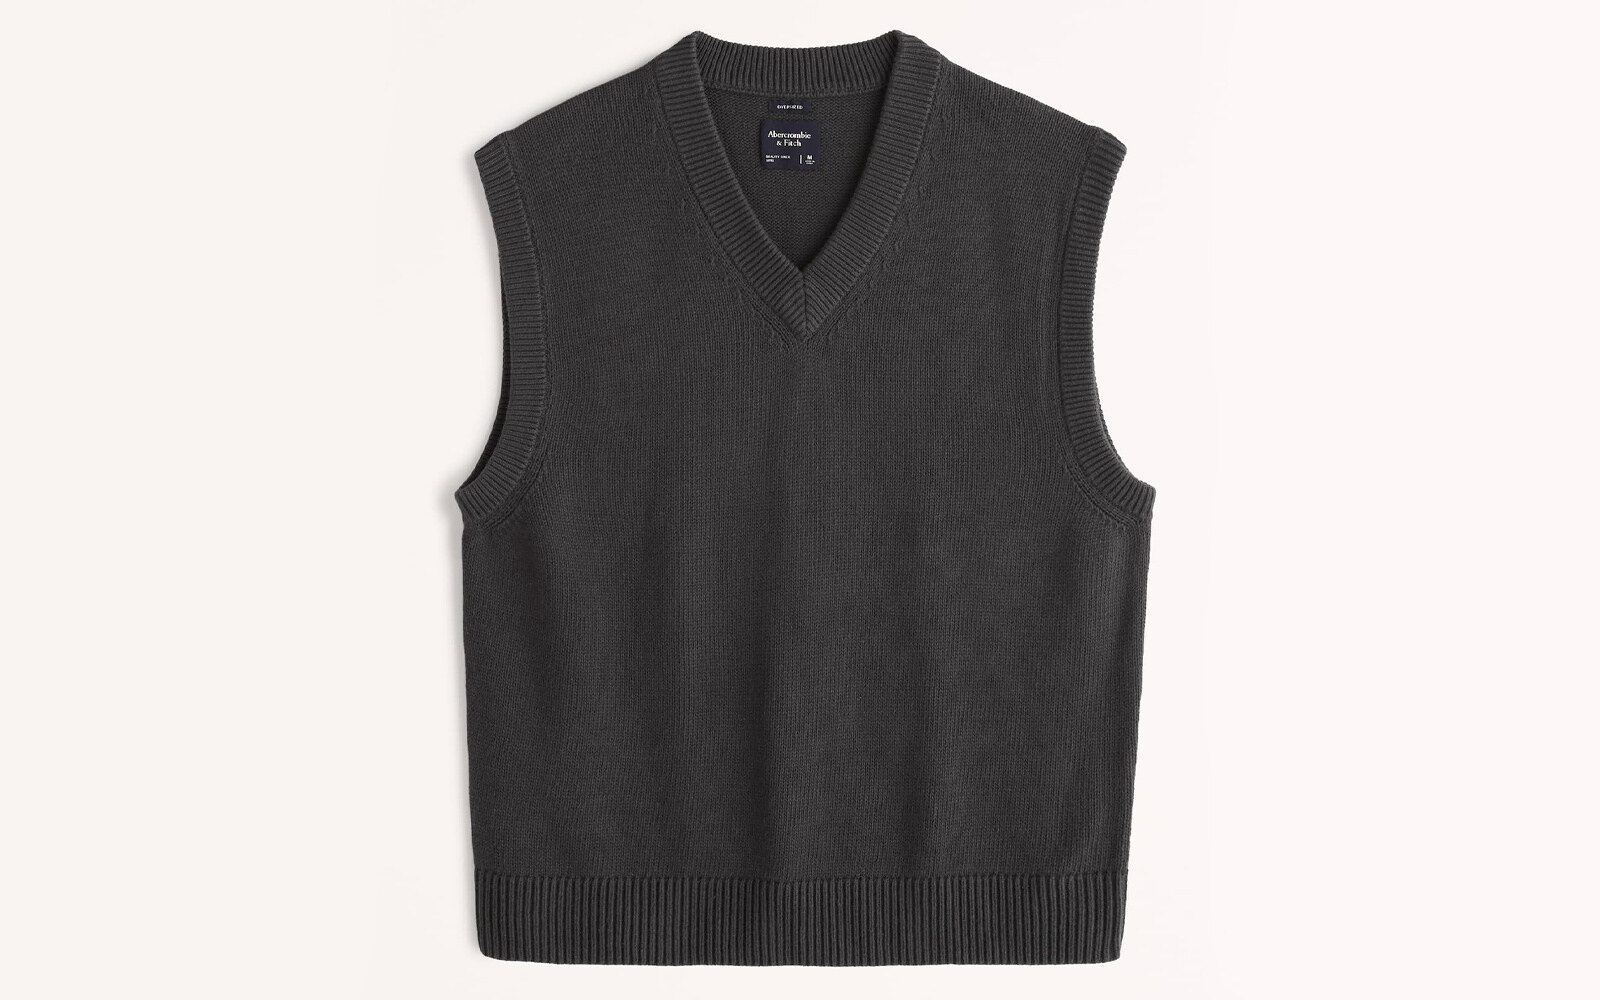 Gilet in maglia Abercrombie & Fitch